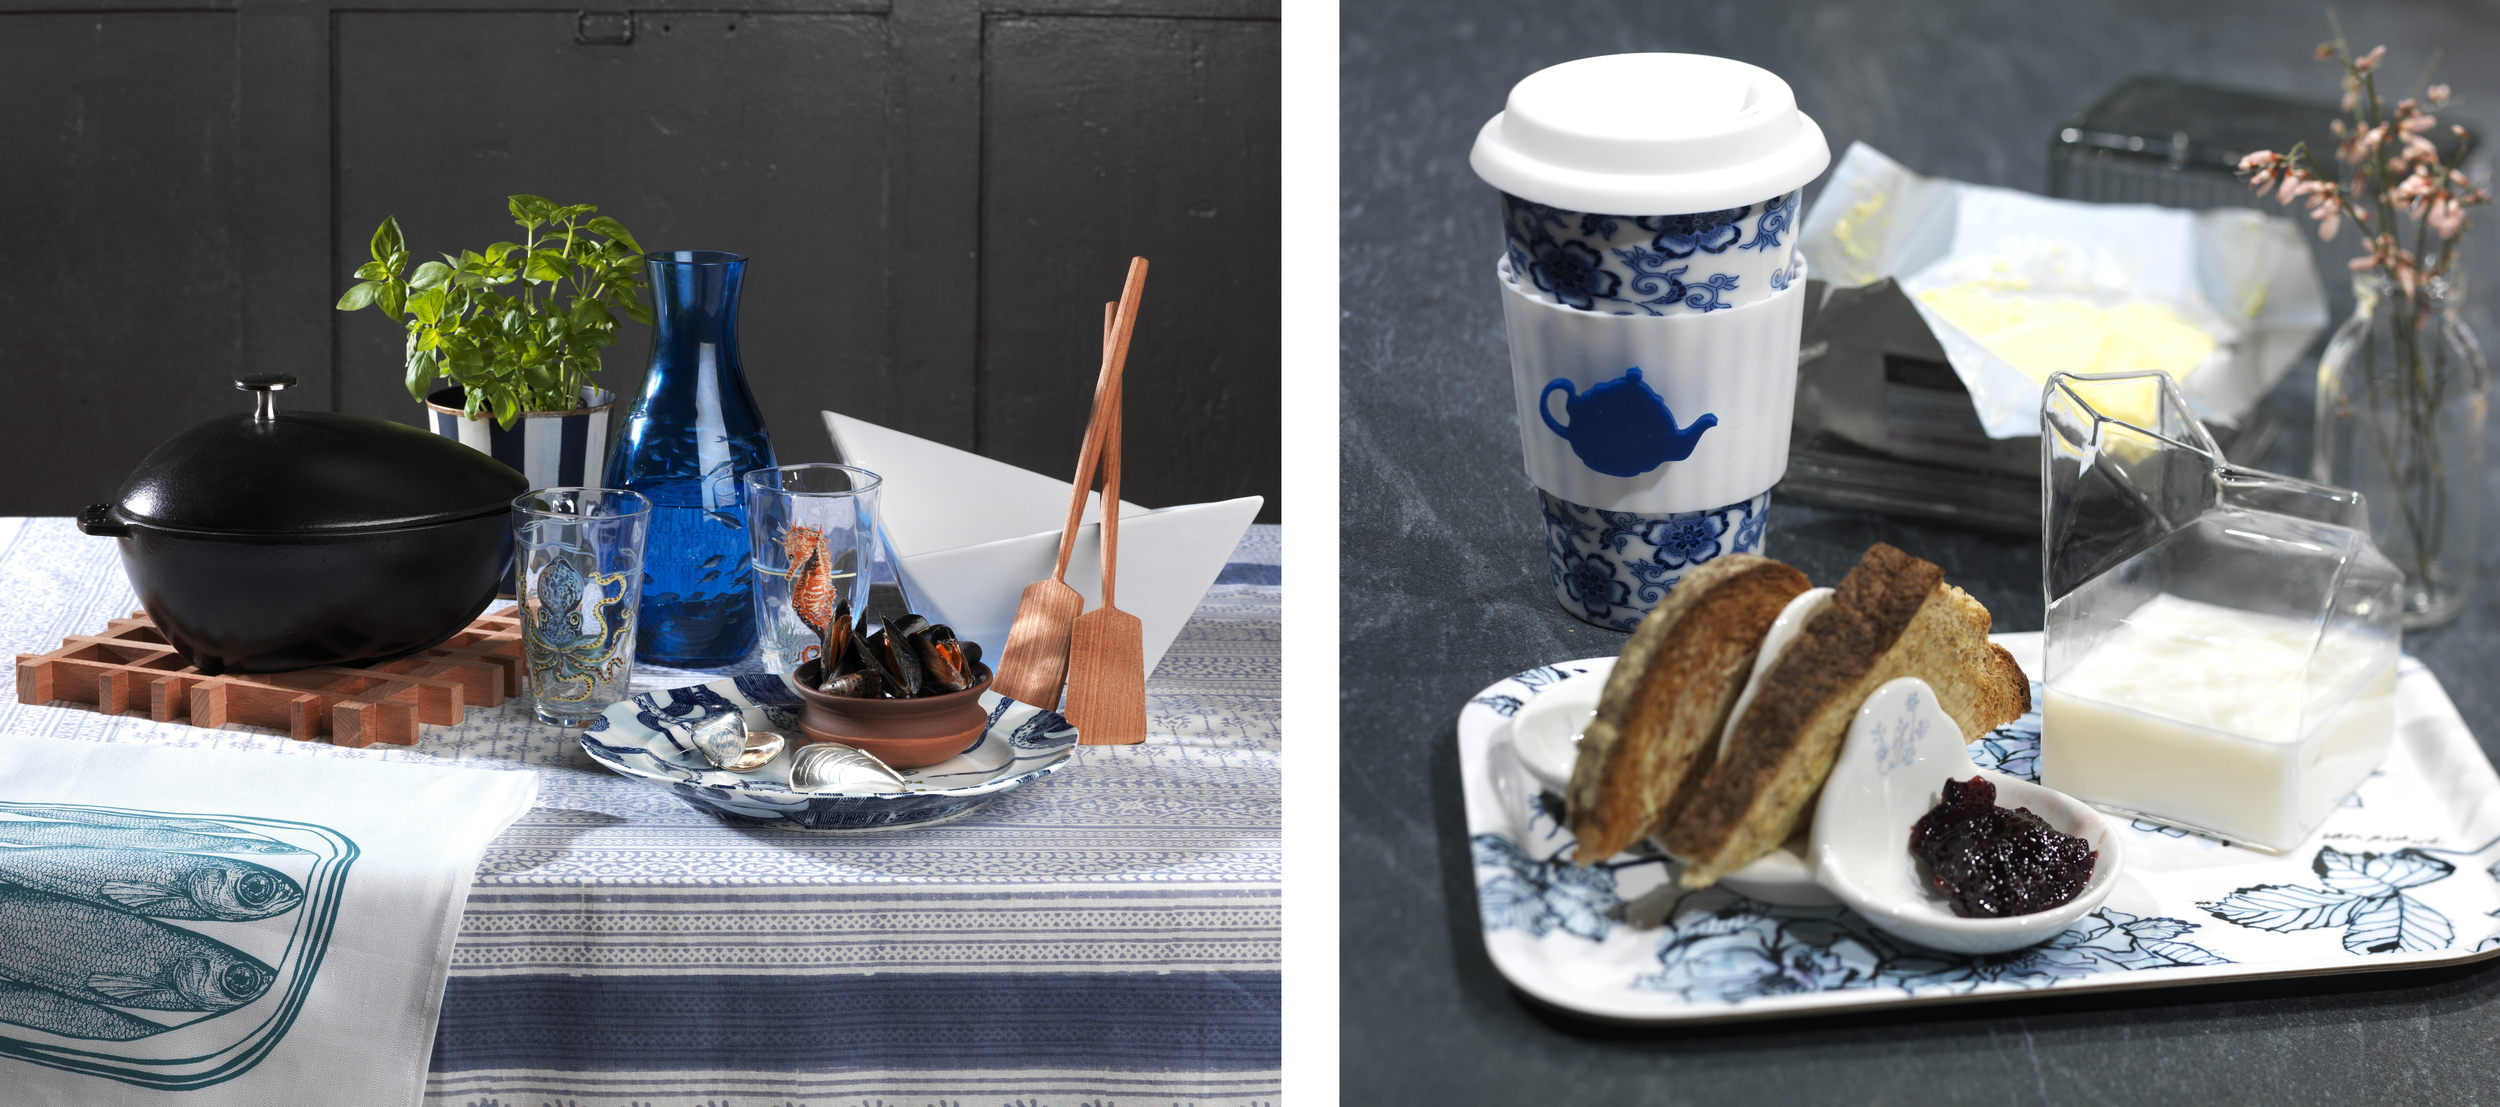 9b. Essential Kitchens, Bedrooms and Bathrooms magazine Breakfast Takeaway and Toast shot by Interior Stylist Joanna Thornhill.jpg